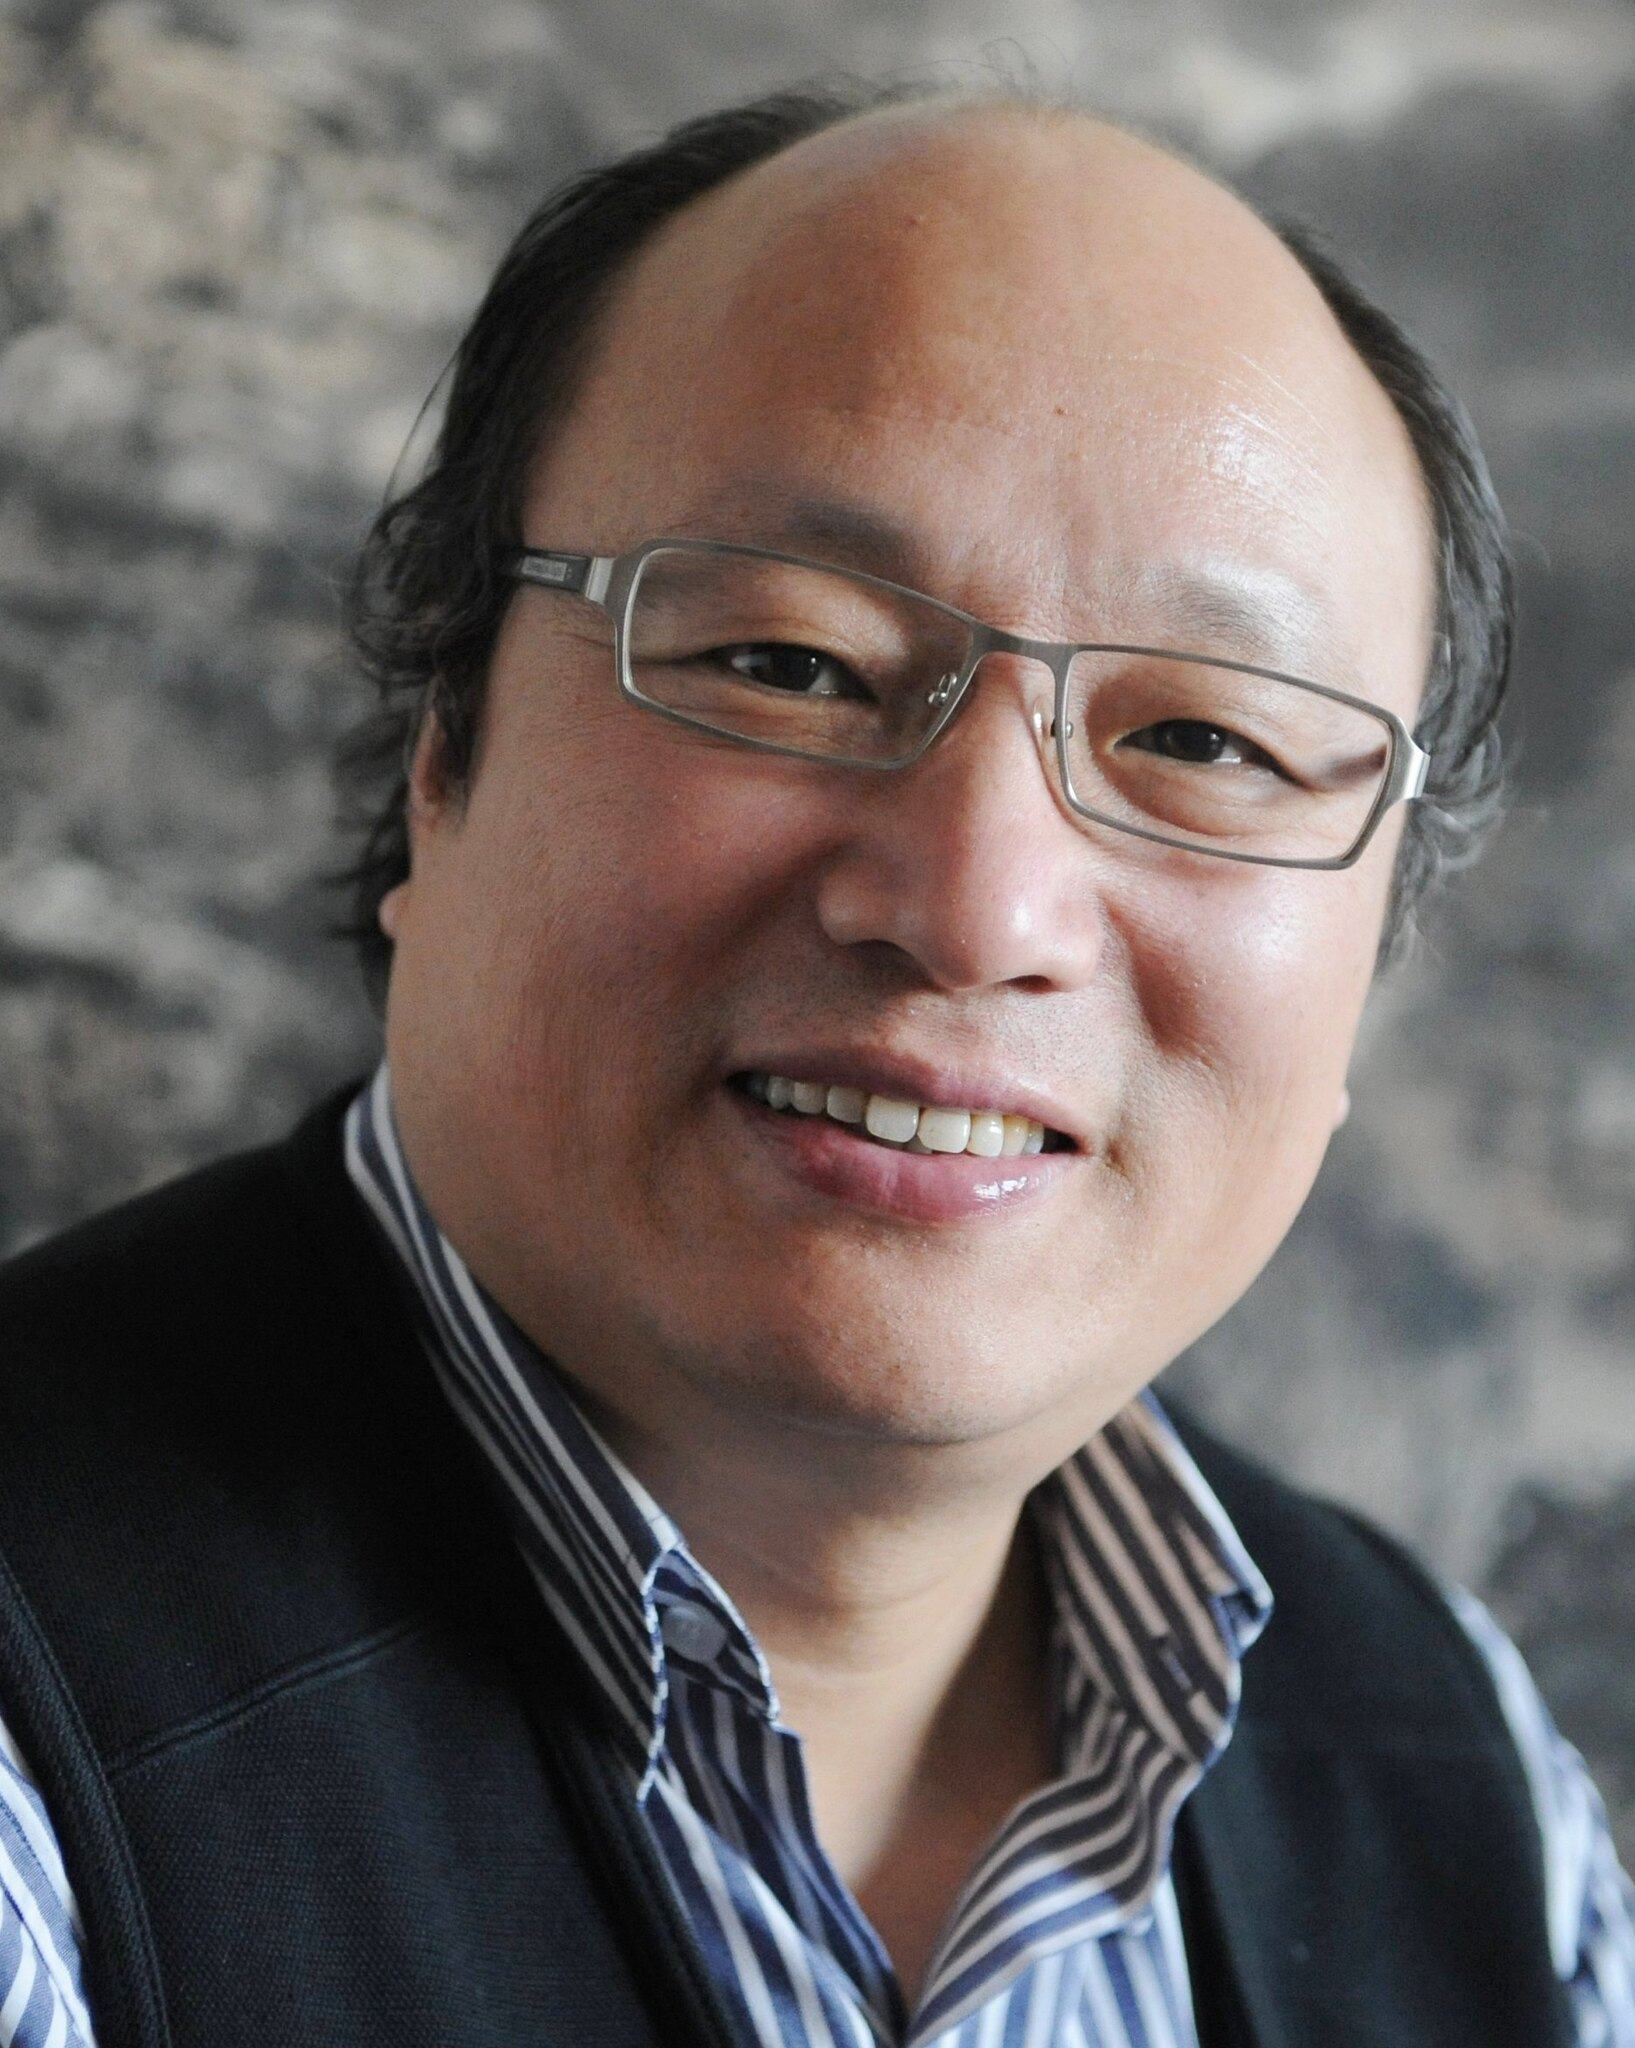 Jianguo Ma, Xinhua News Agency - UNCA Second Vice President 2019